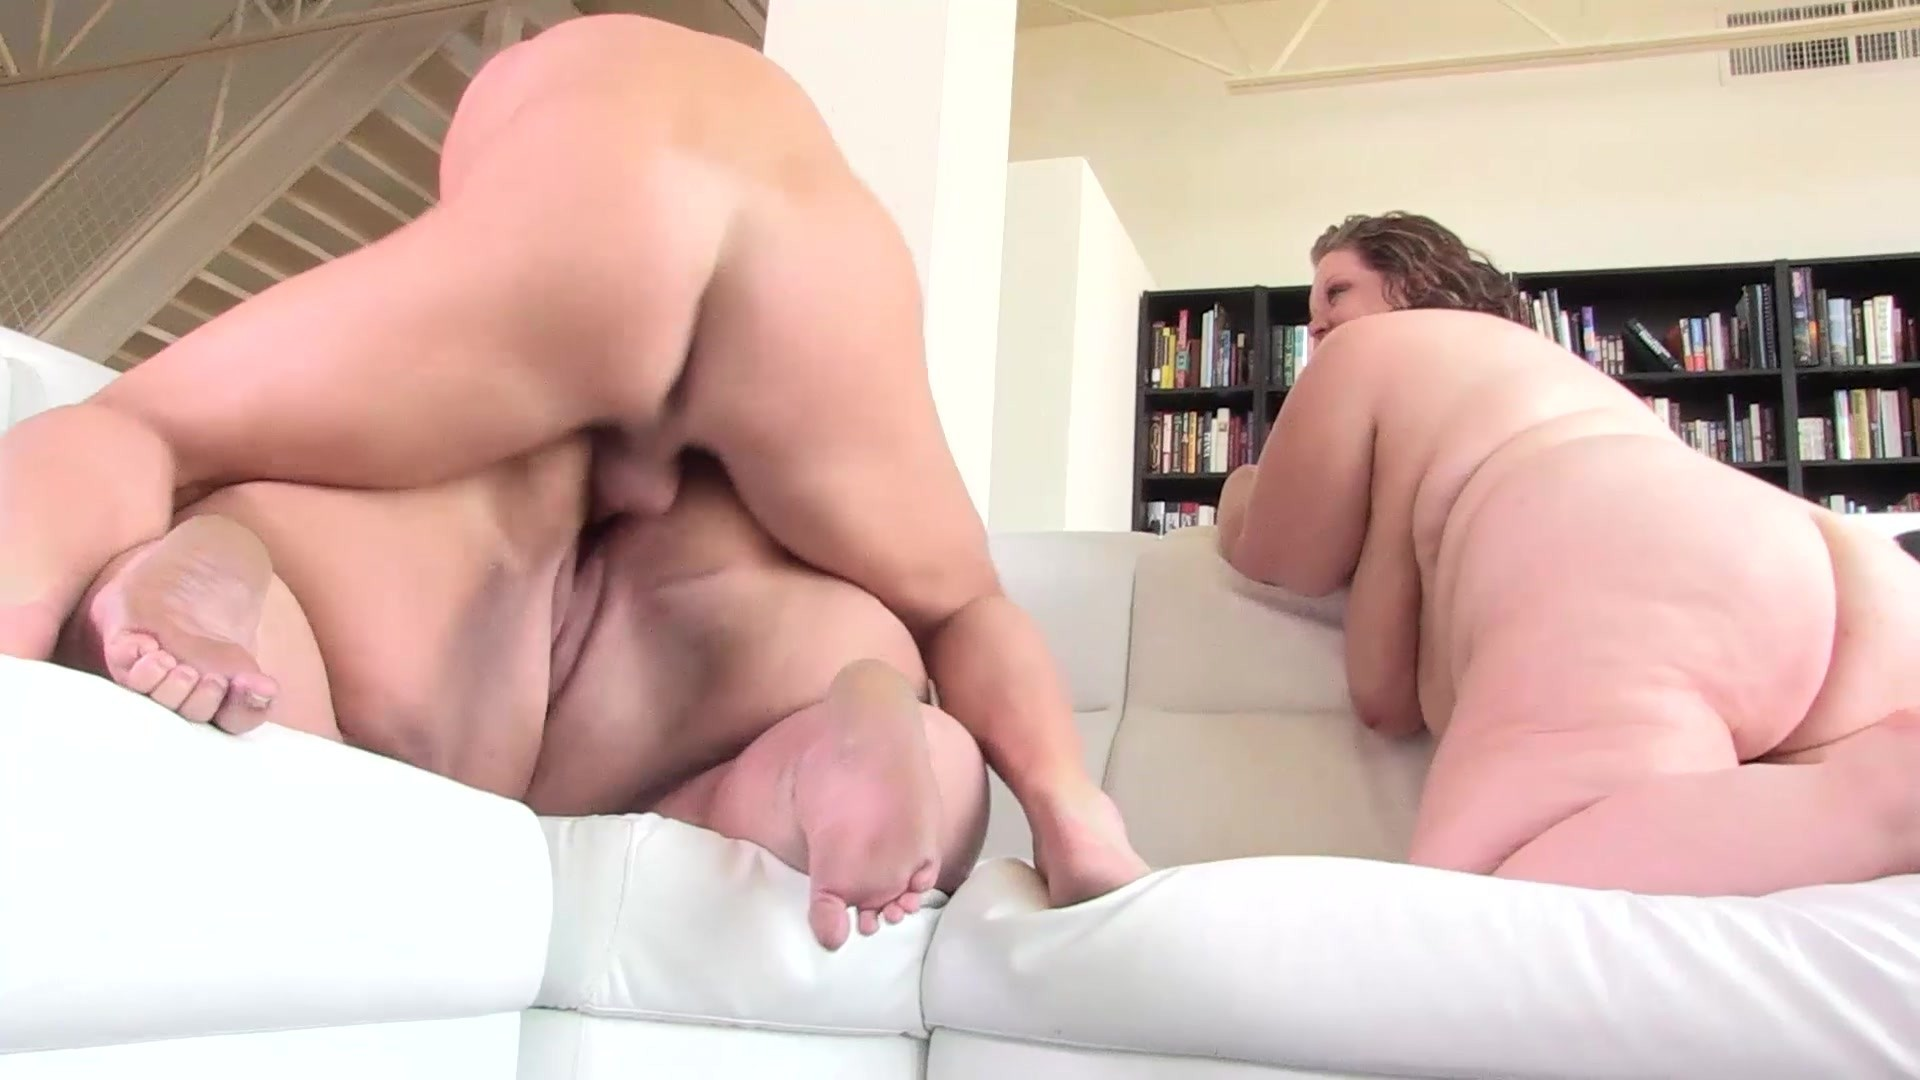 Ig Fat Women Naked Showing Full Body Mobile Porn Vedios